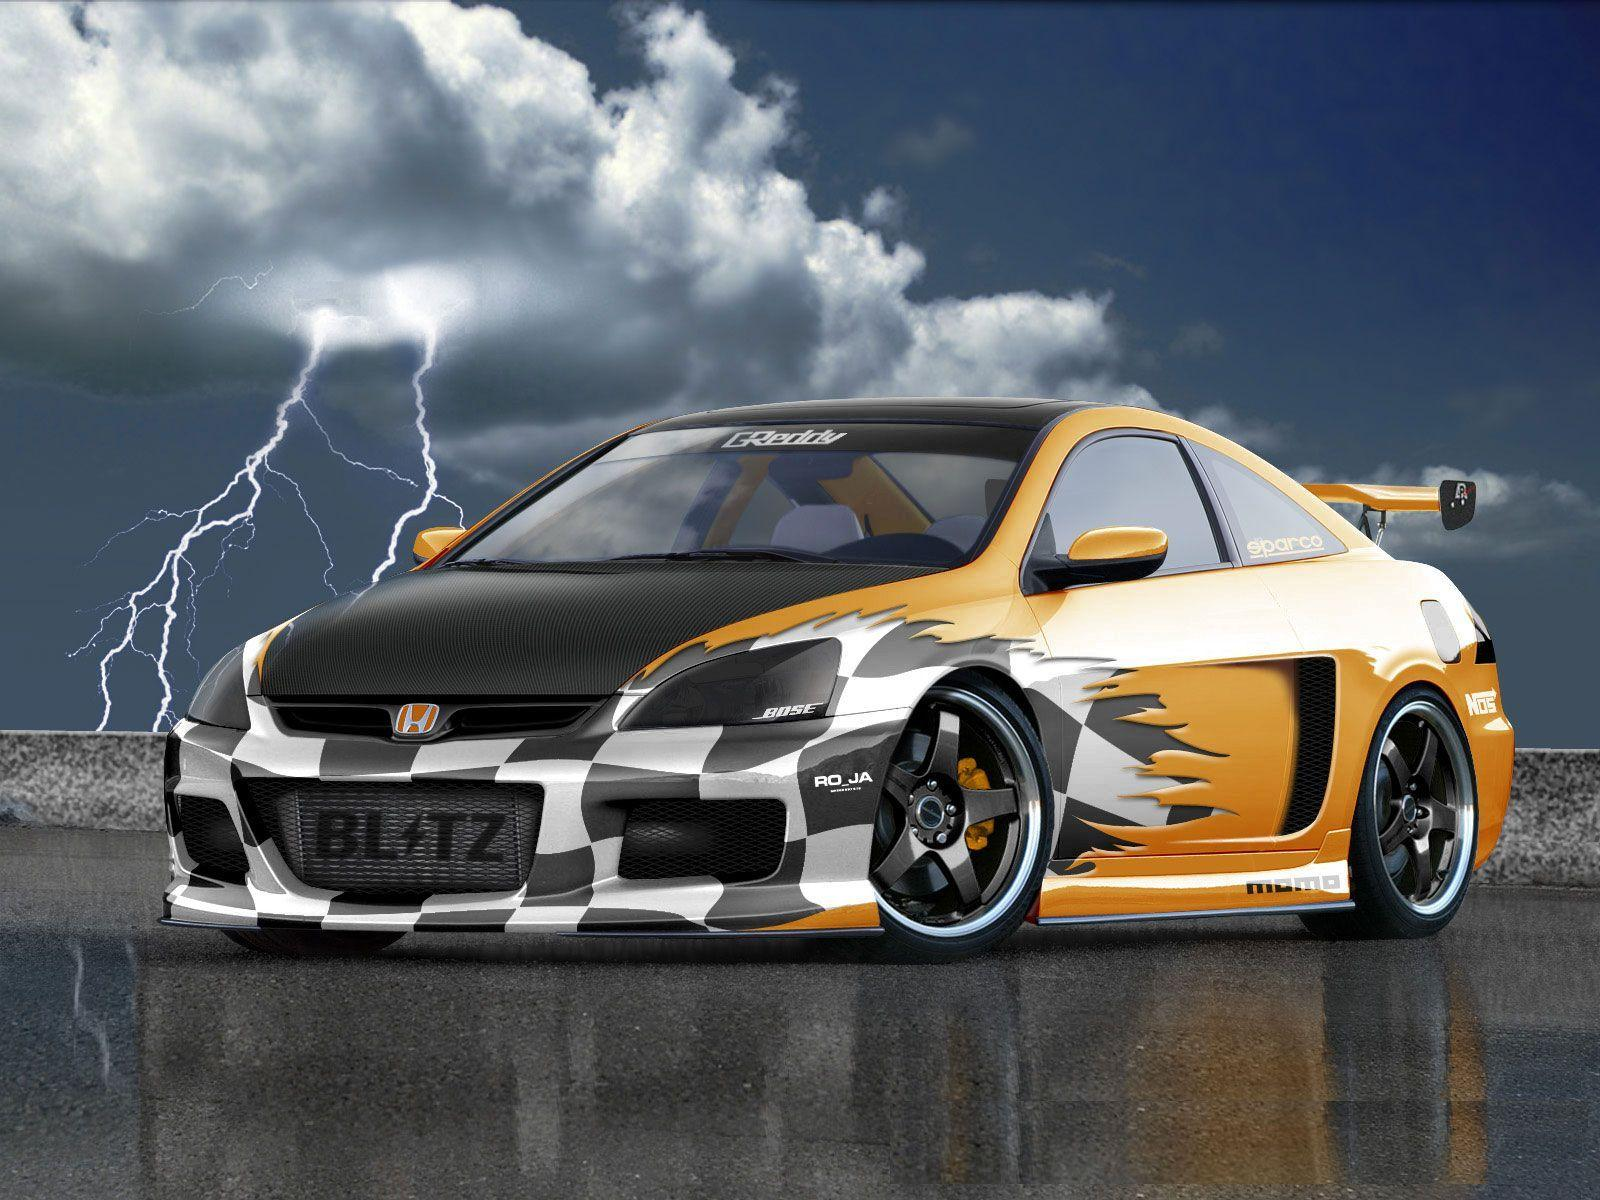 Cool Car Wallpaper Backgrounds | C a r   W a l l p a p e r  2014